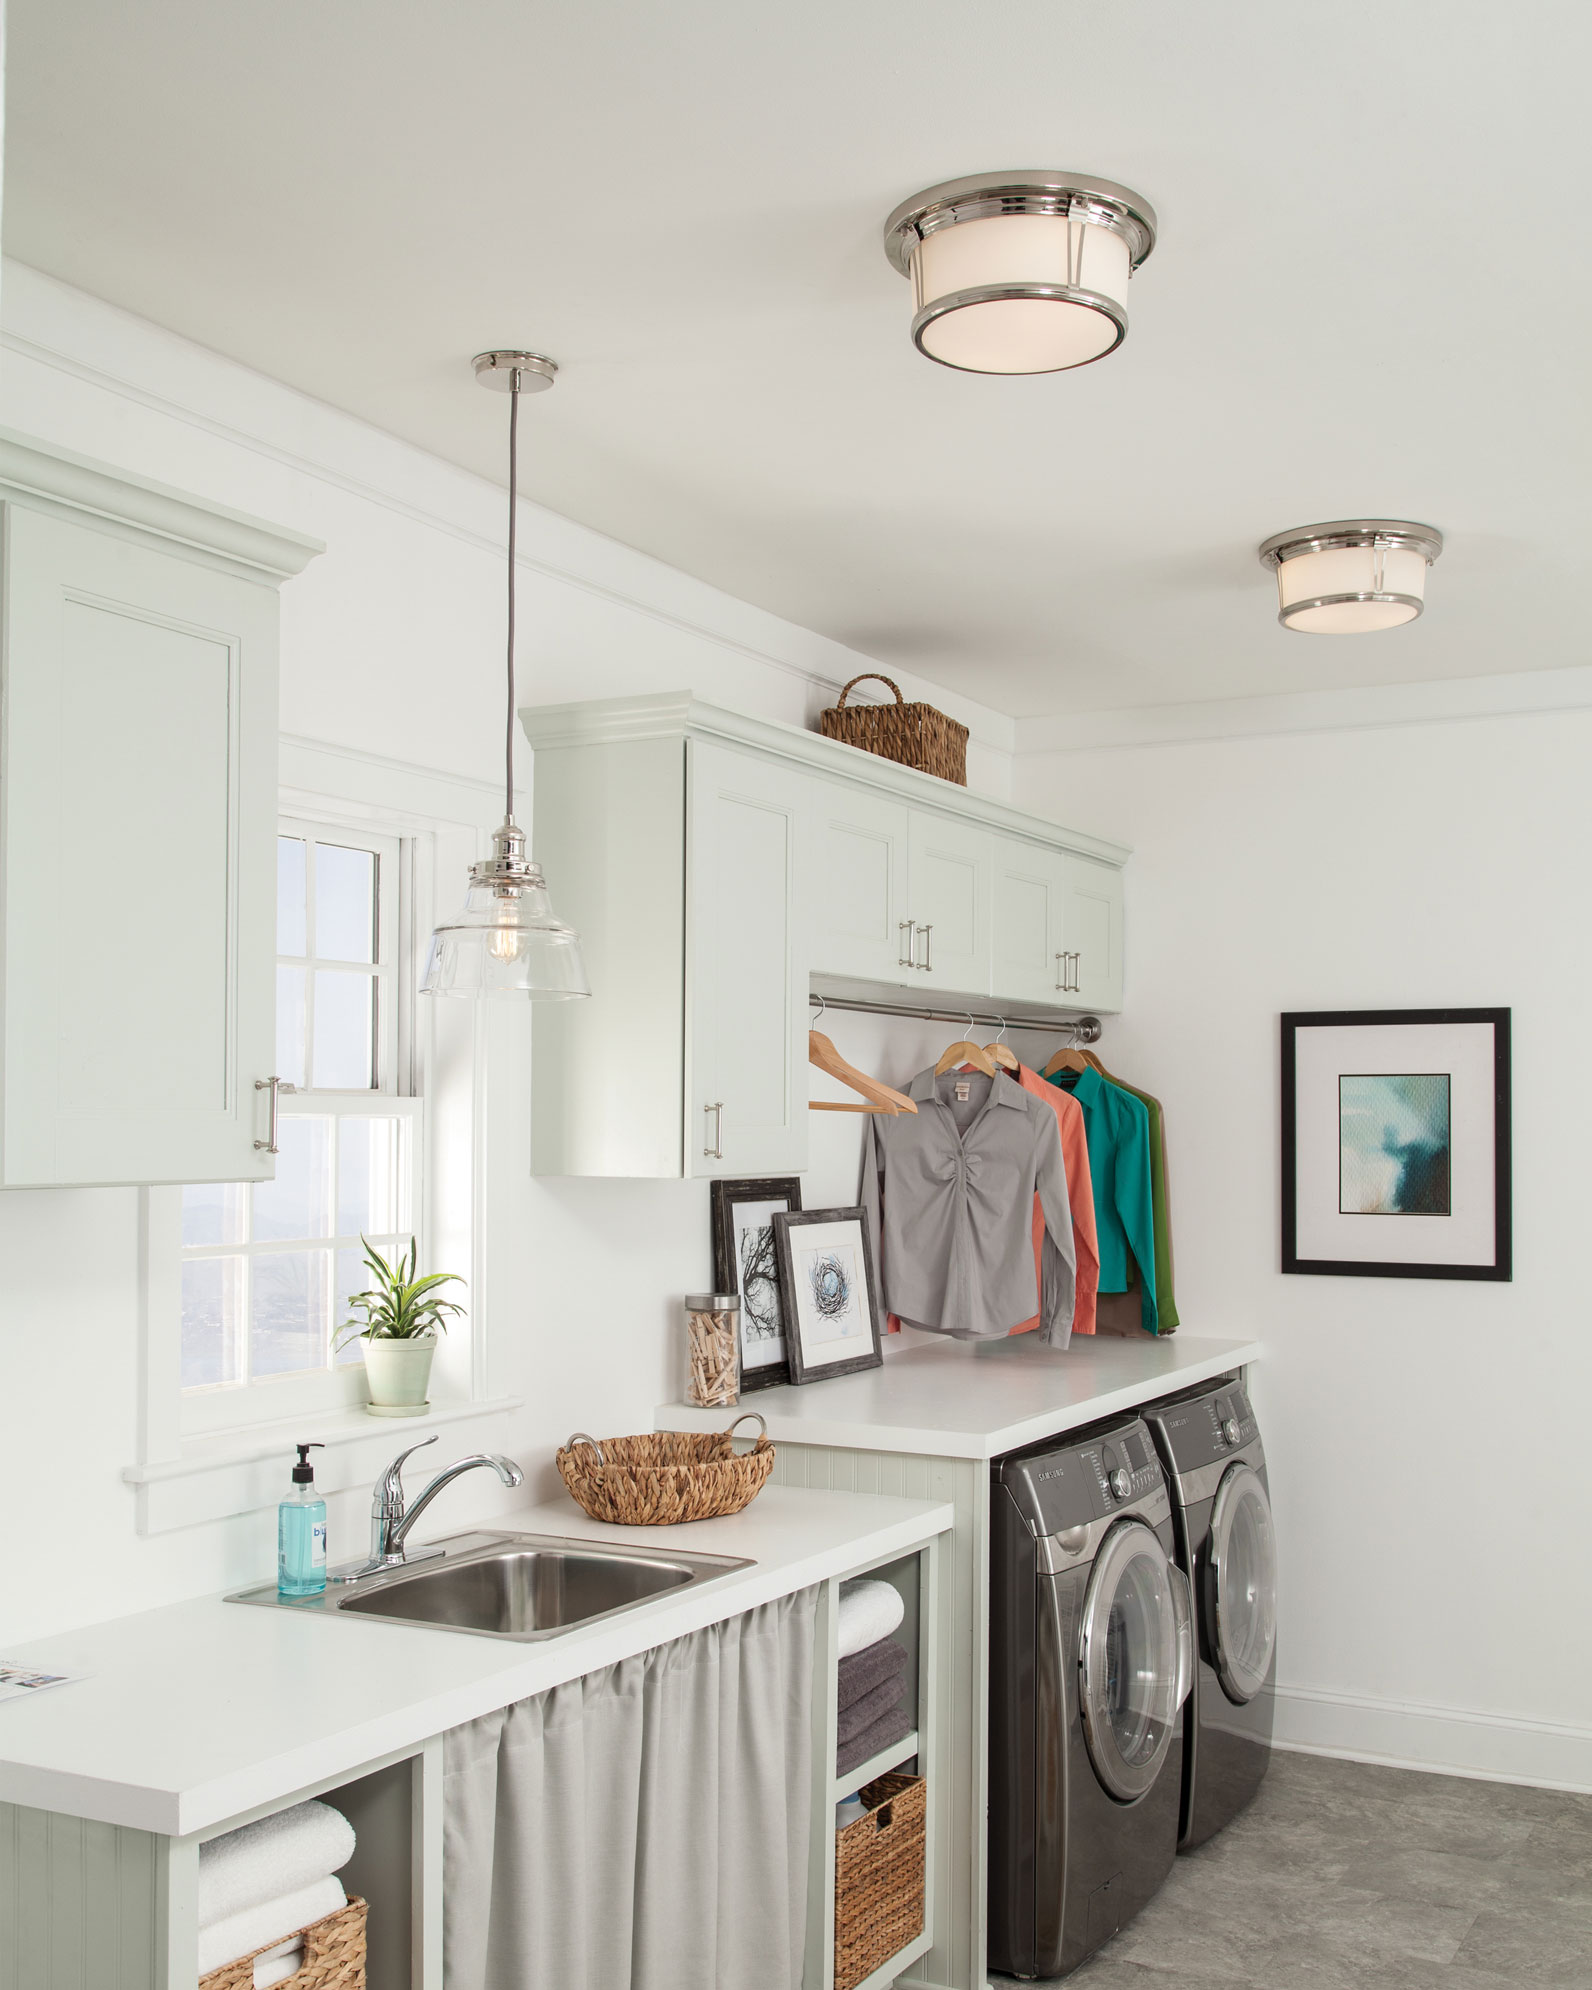 As laundry and utility rooms get bigger lights get more fuctional.